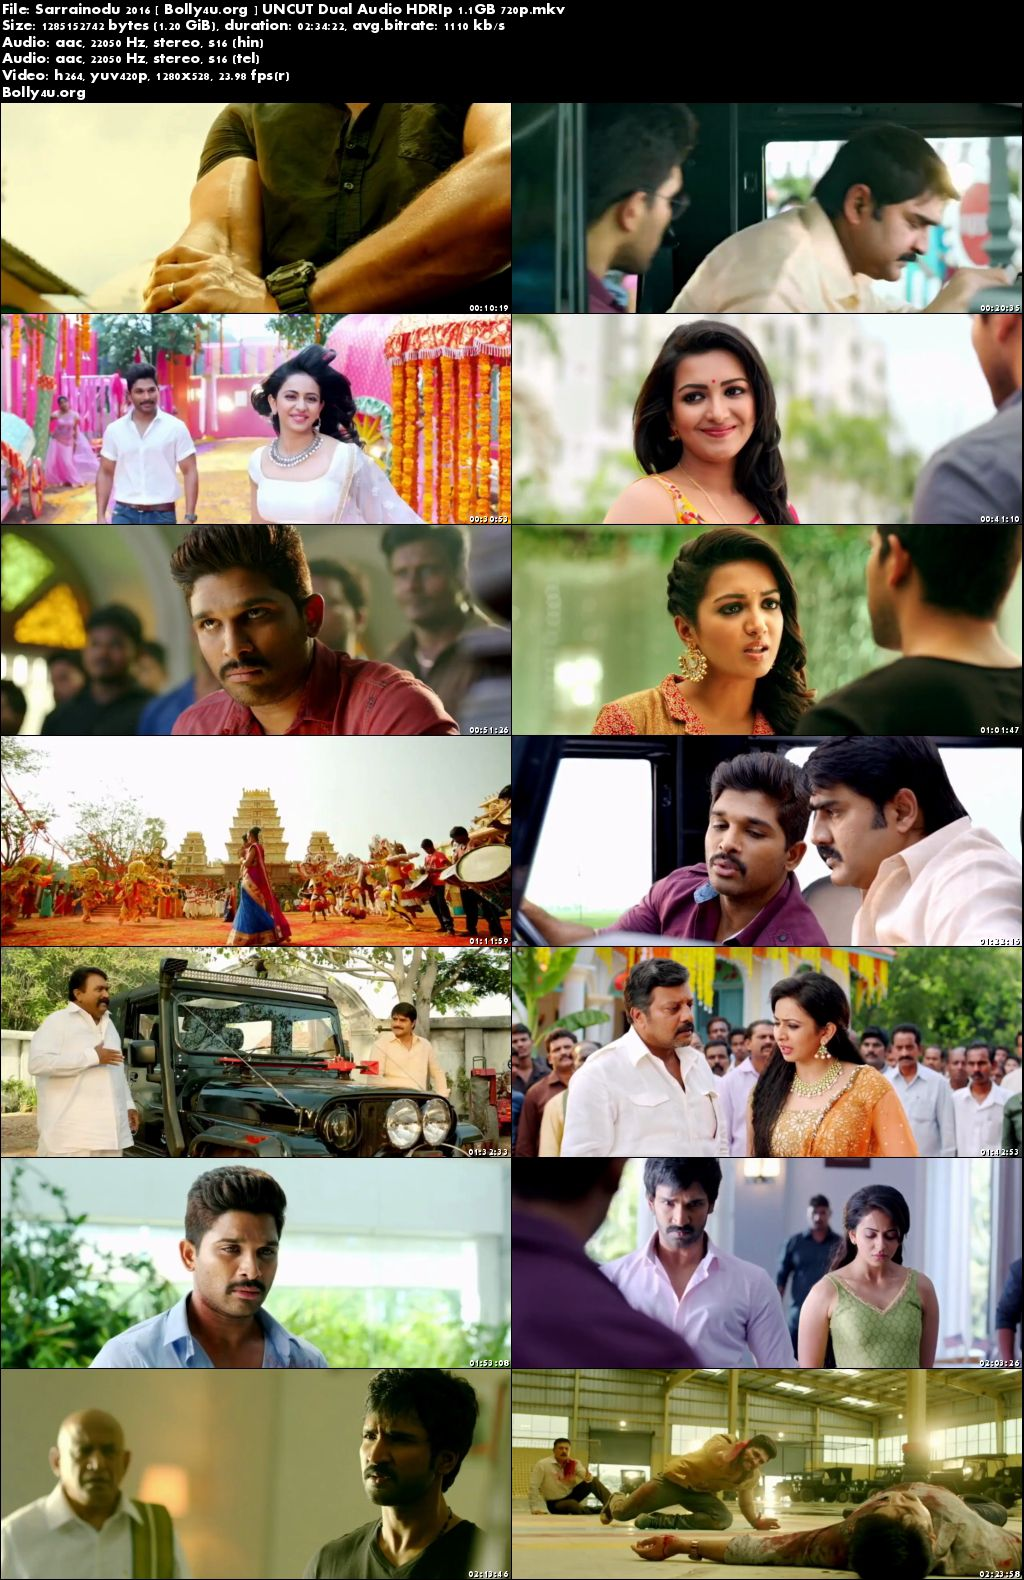 Sarrainodu 2016 HDRip 450MB UNCUT Hindi Dubbed Dual Audio 480p Download